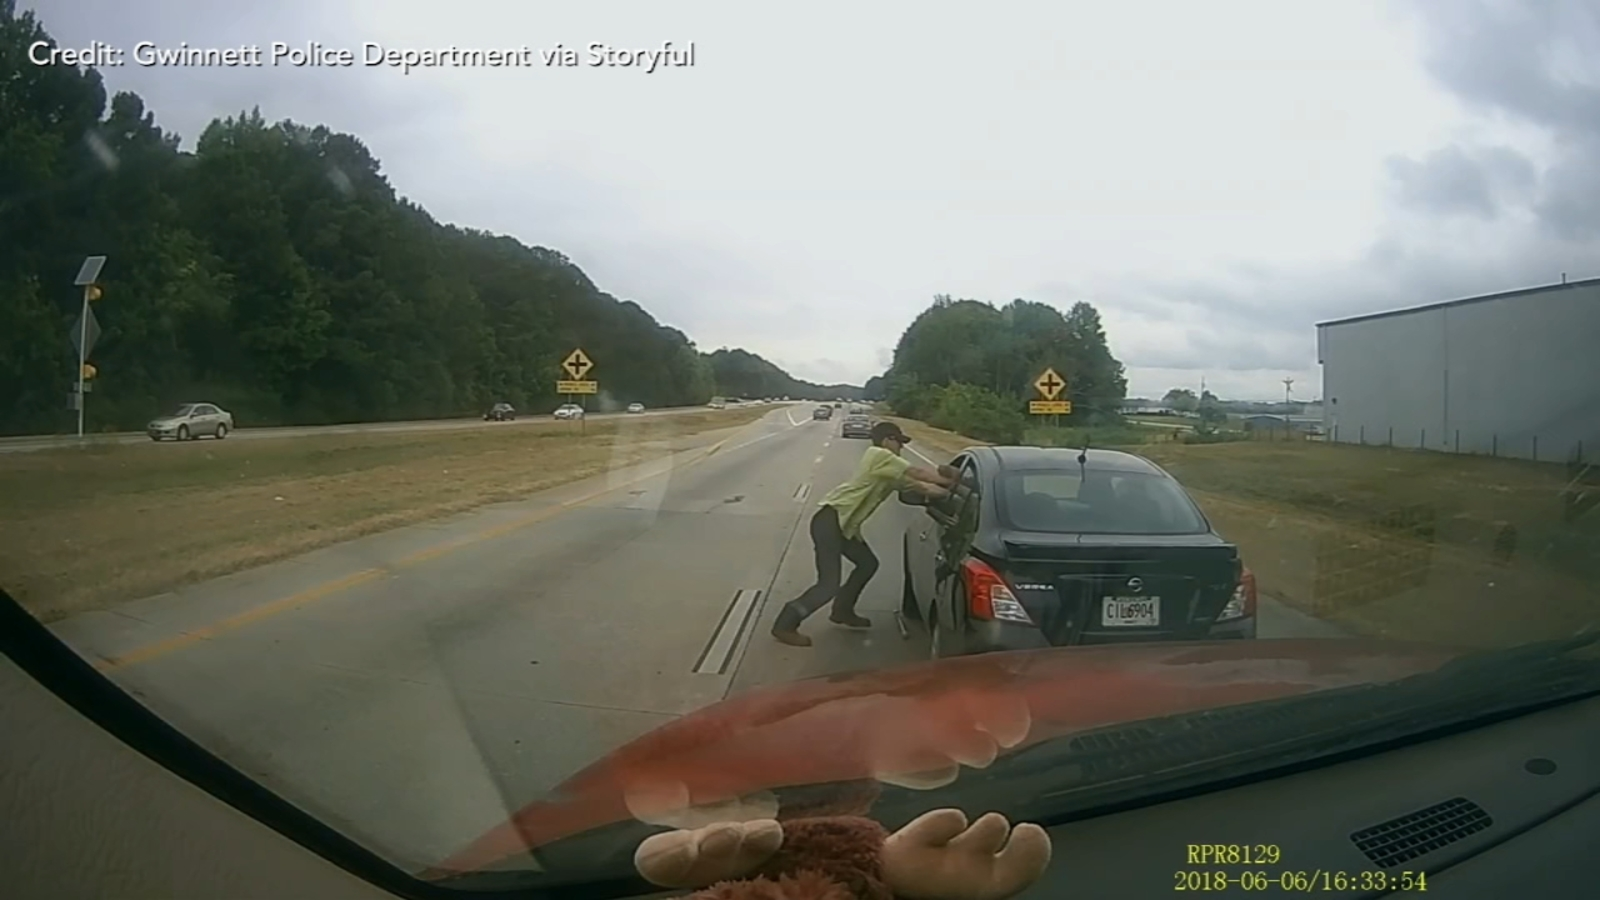 VIDEO: Man dragged down highway during road rage incident